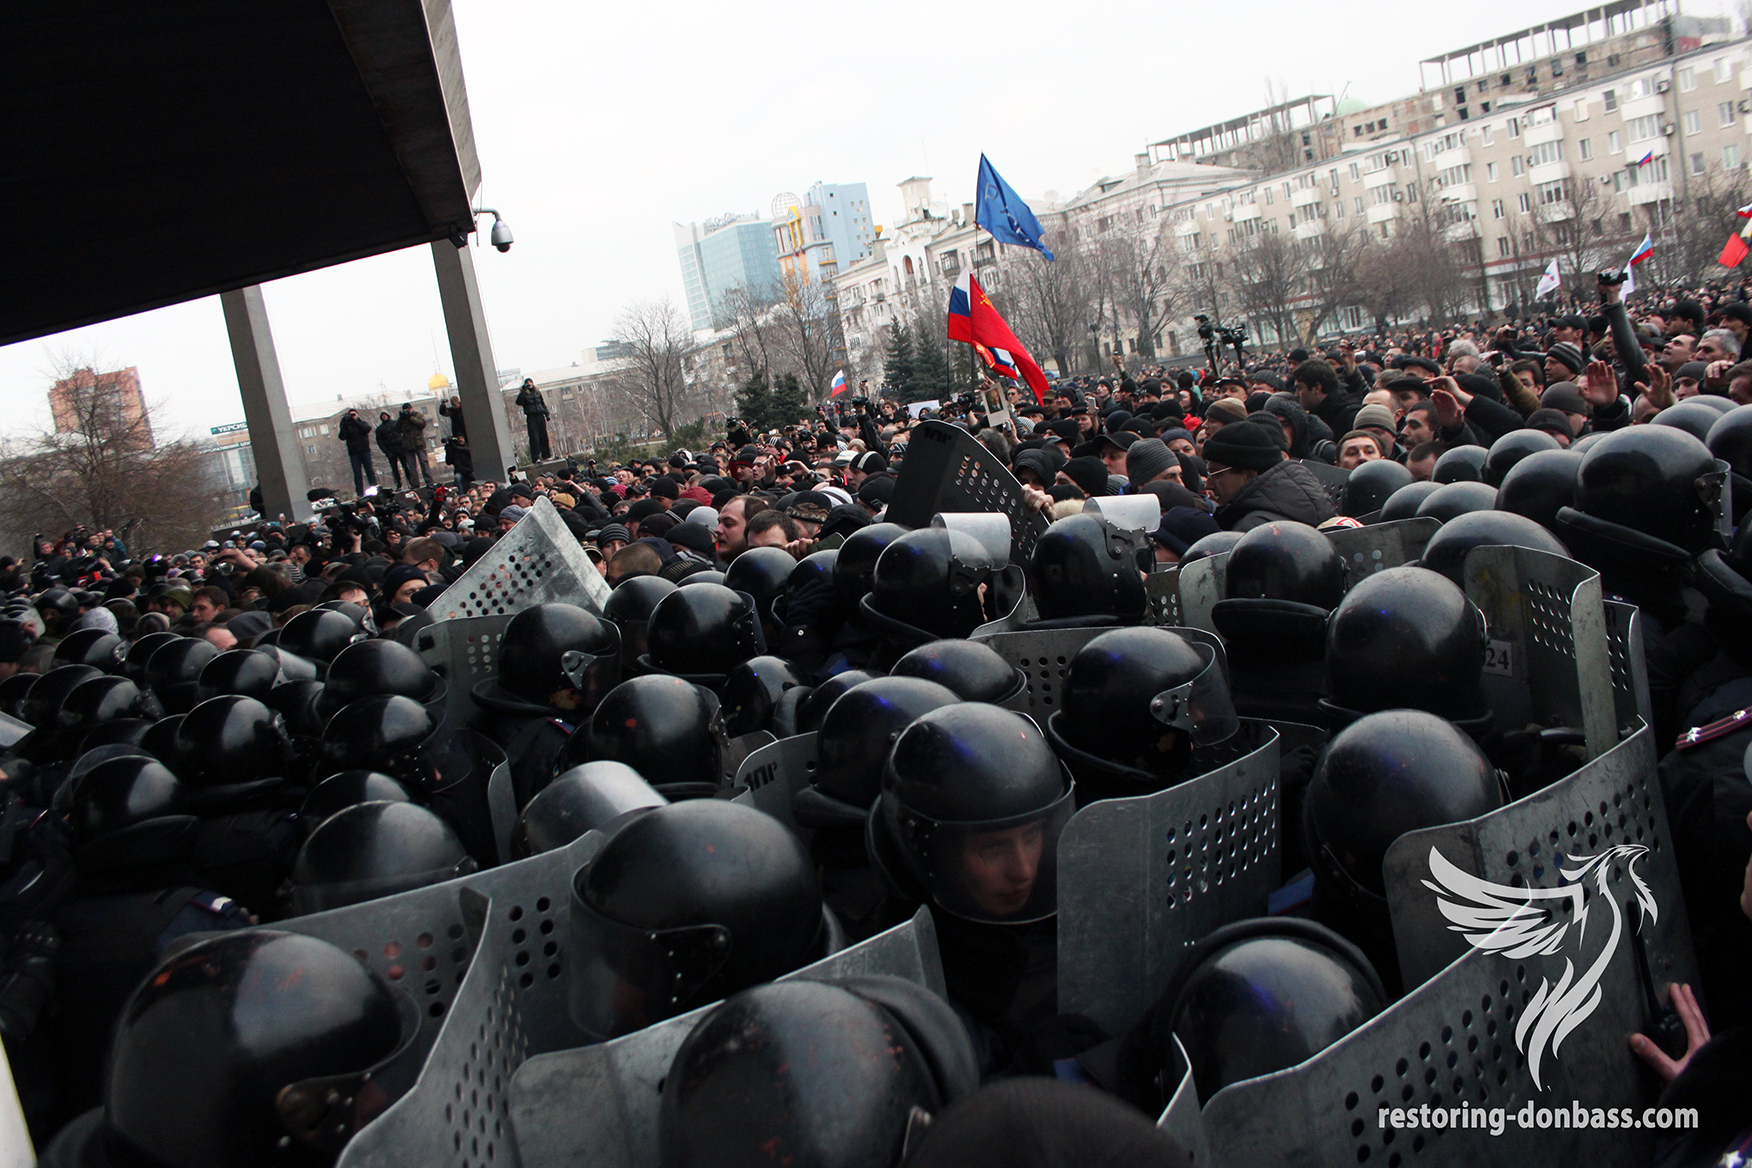 The assault on the Donetsk Regional State Administration by pro-Russian protesters, March 5, 2014